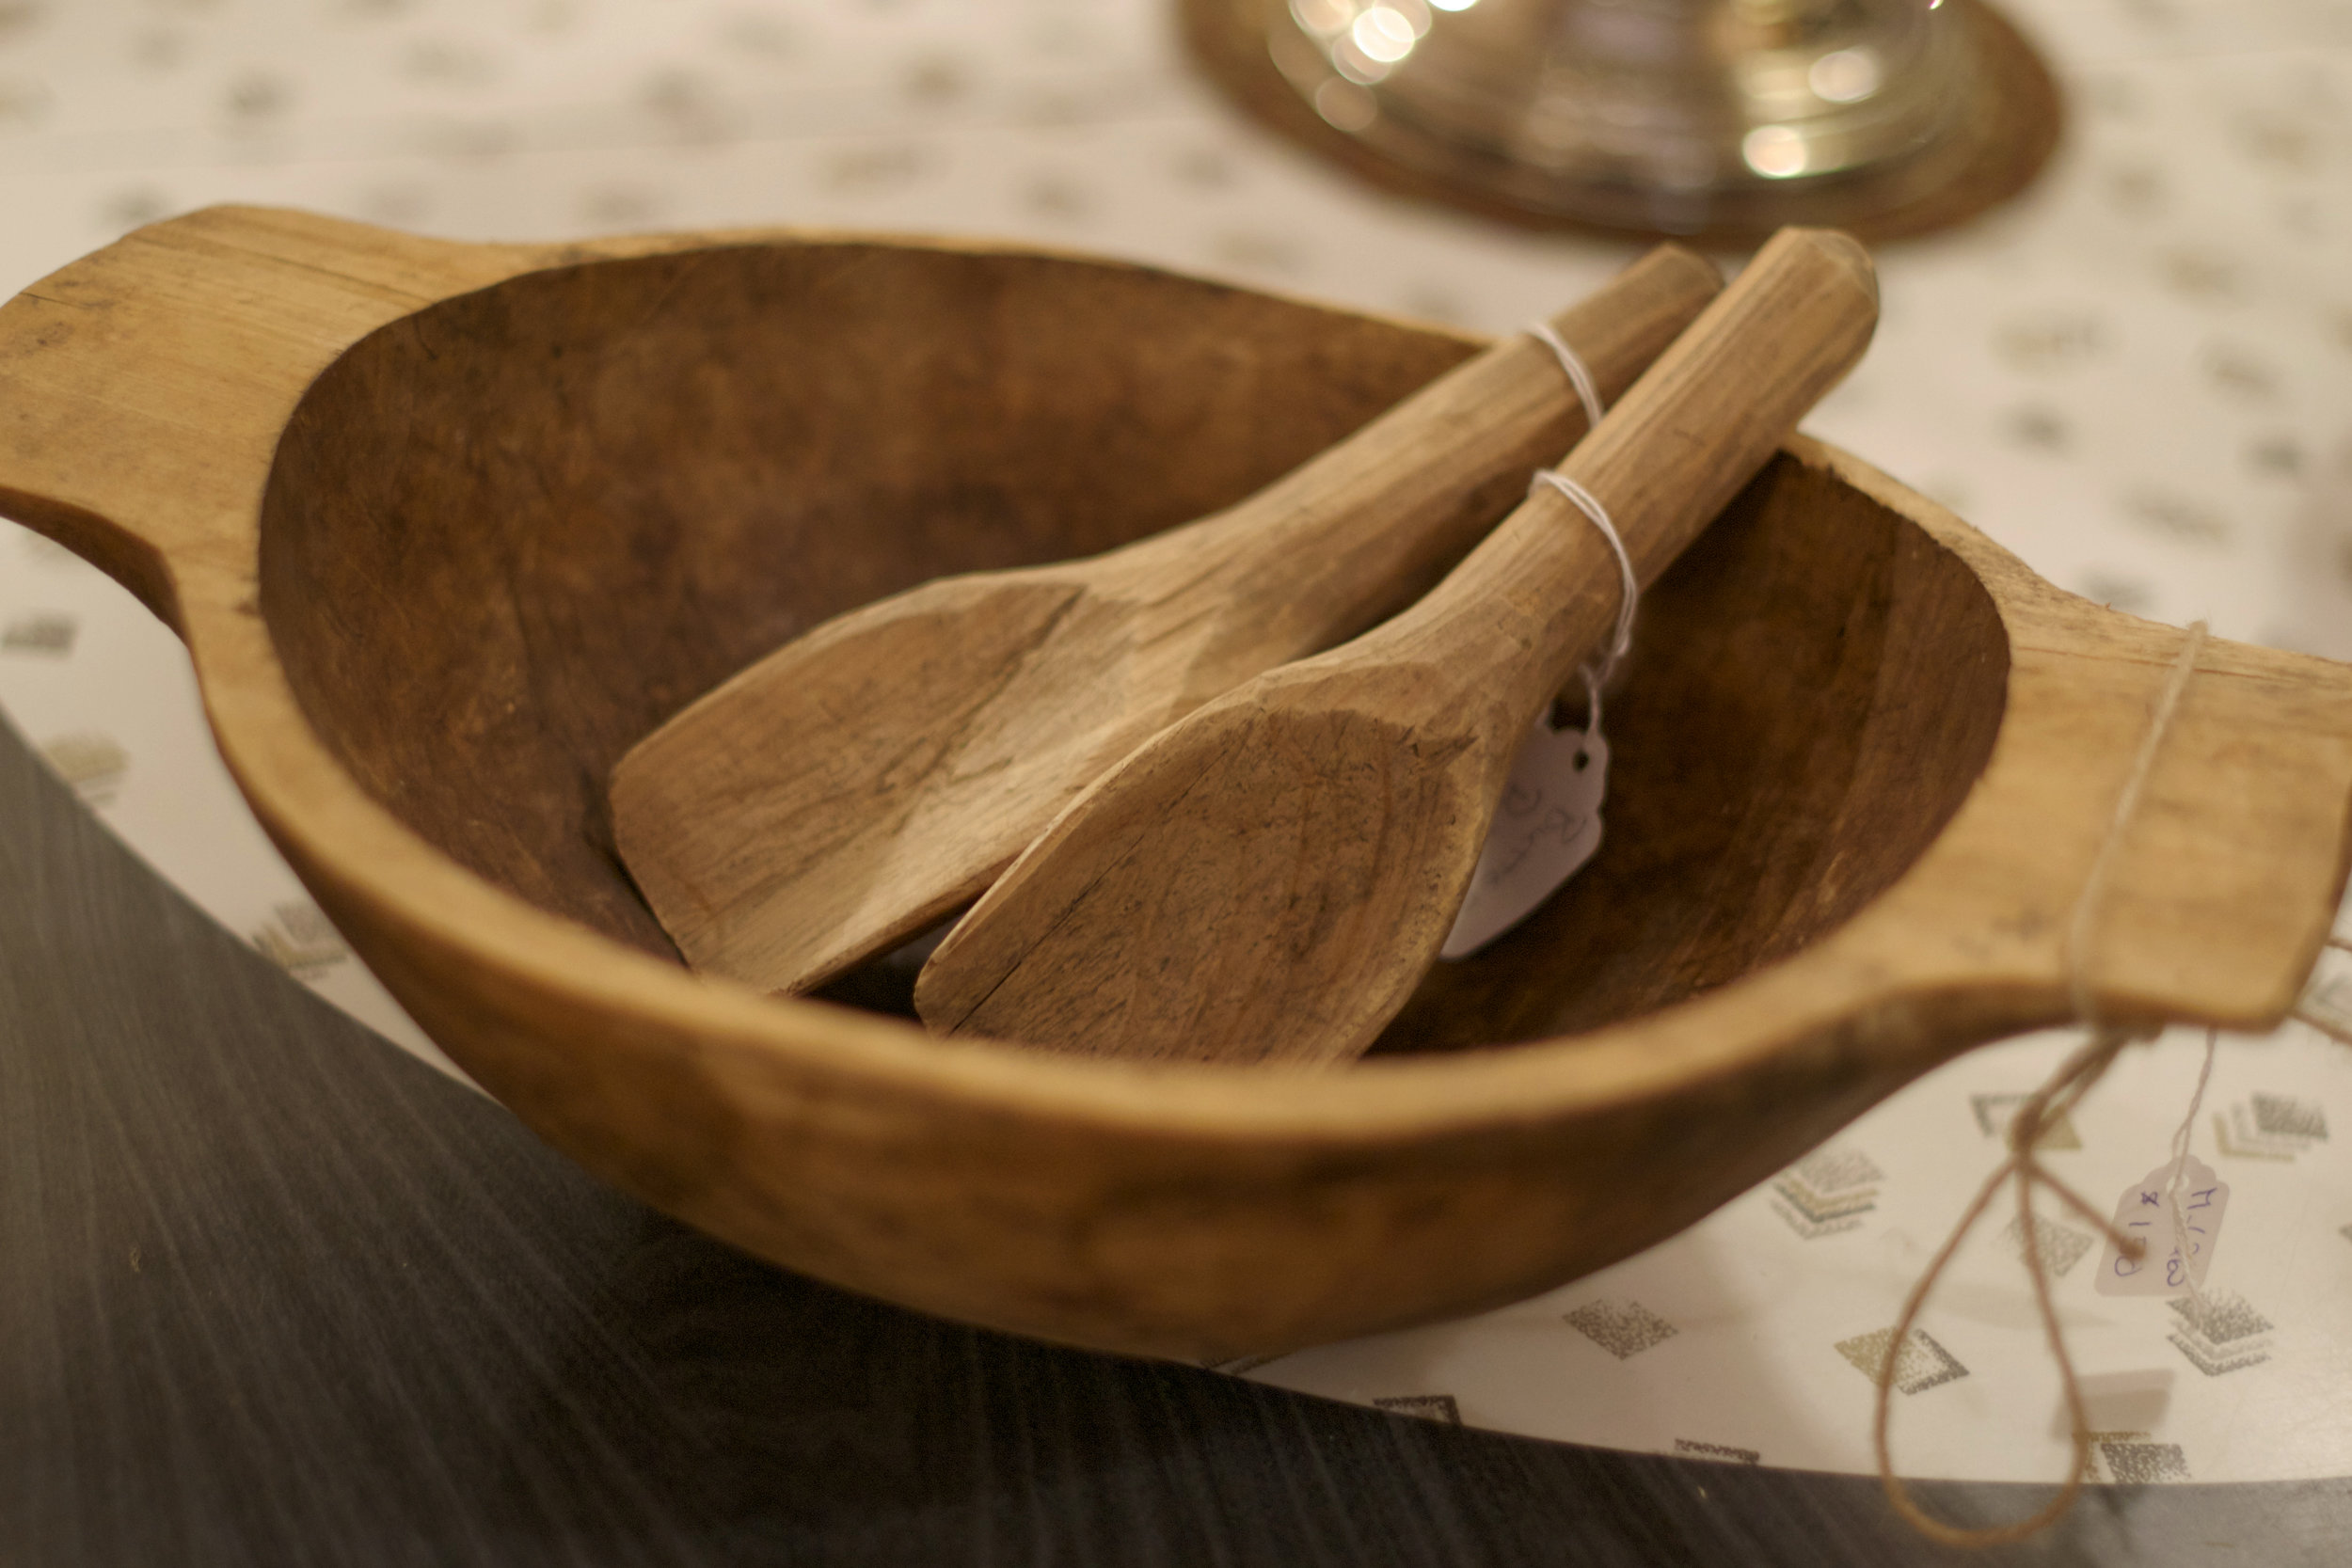 wooden-bowl-and-spoons.jpg